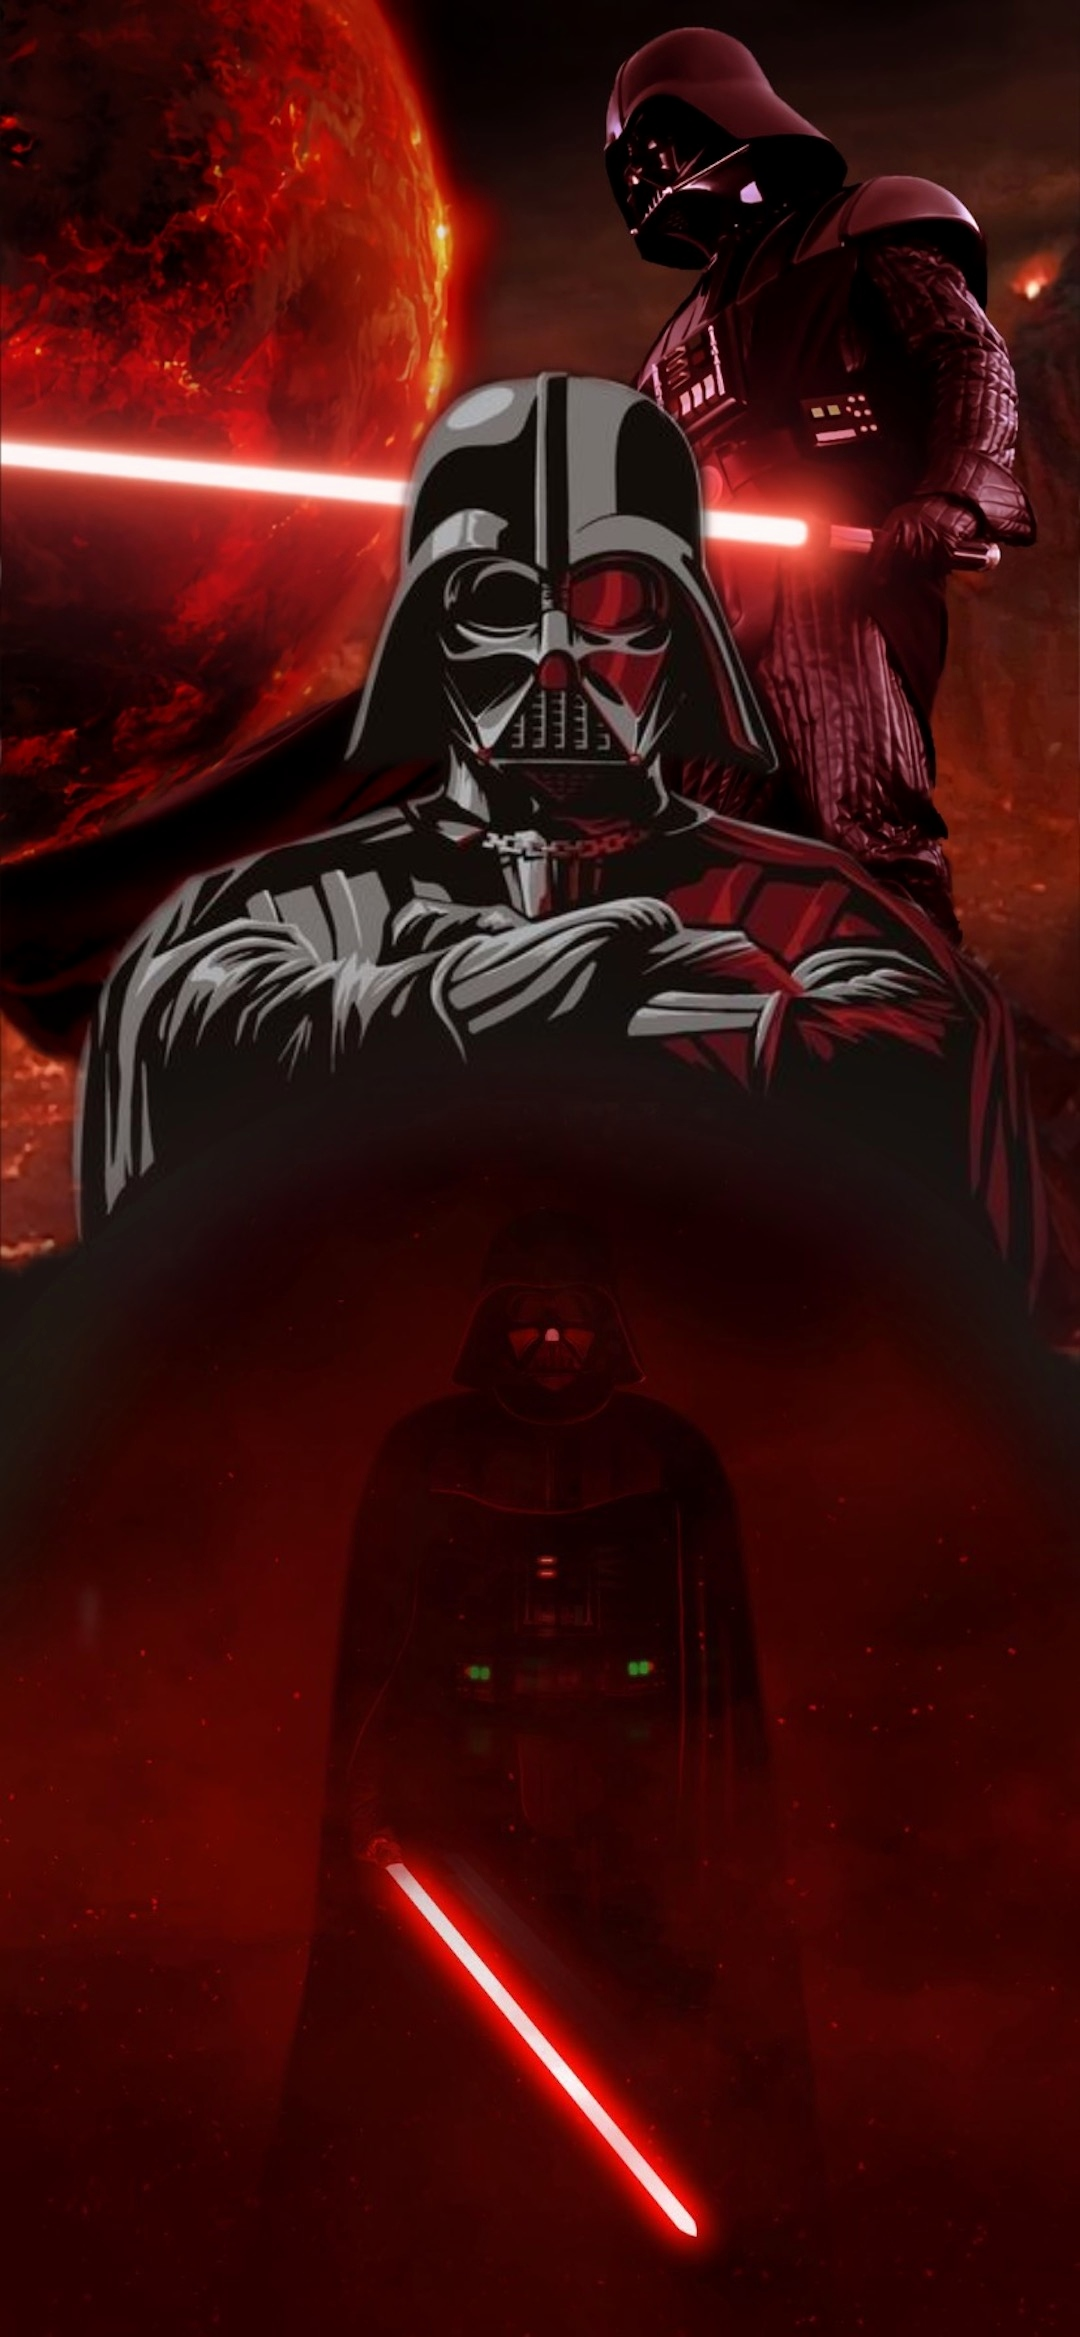 Darth Vader Wallpaper Iphone 2861578 Hd Wallpaper Backgrounds Download